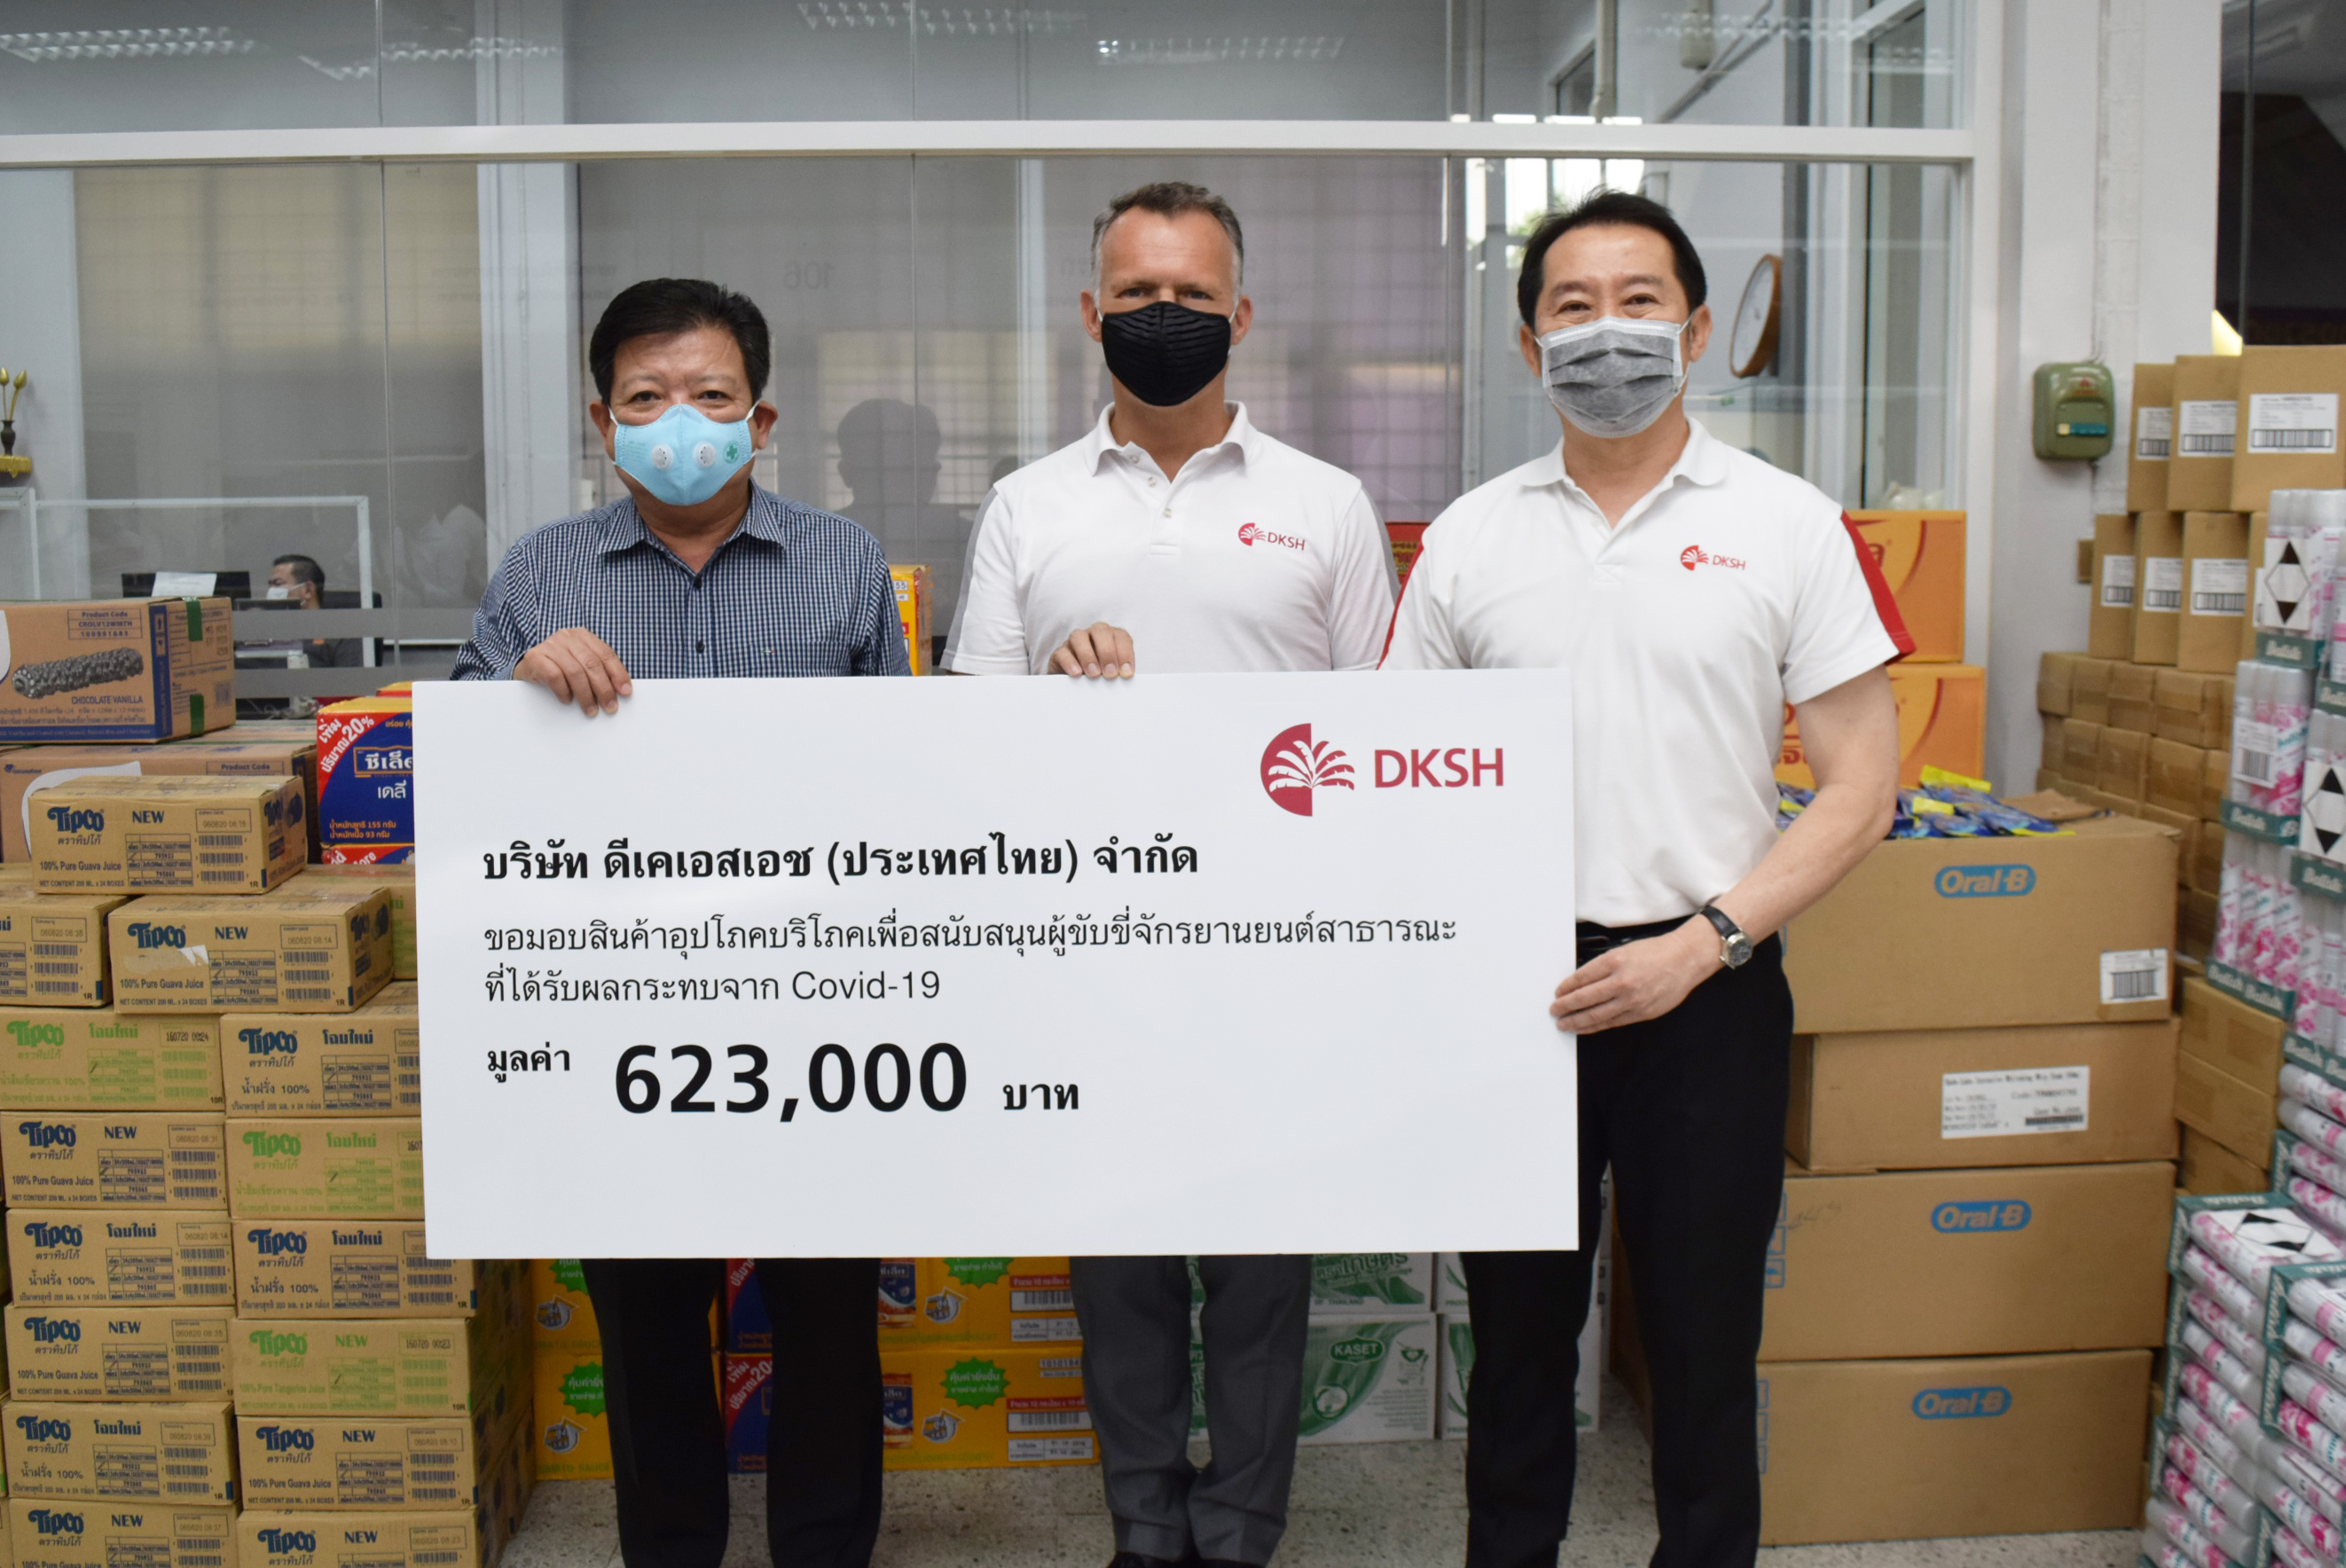 DKSH Thailand donates consumer goods to support motorcycle taxi drivers in need